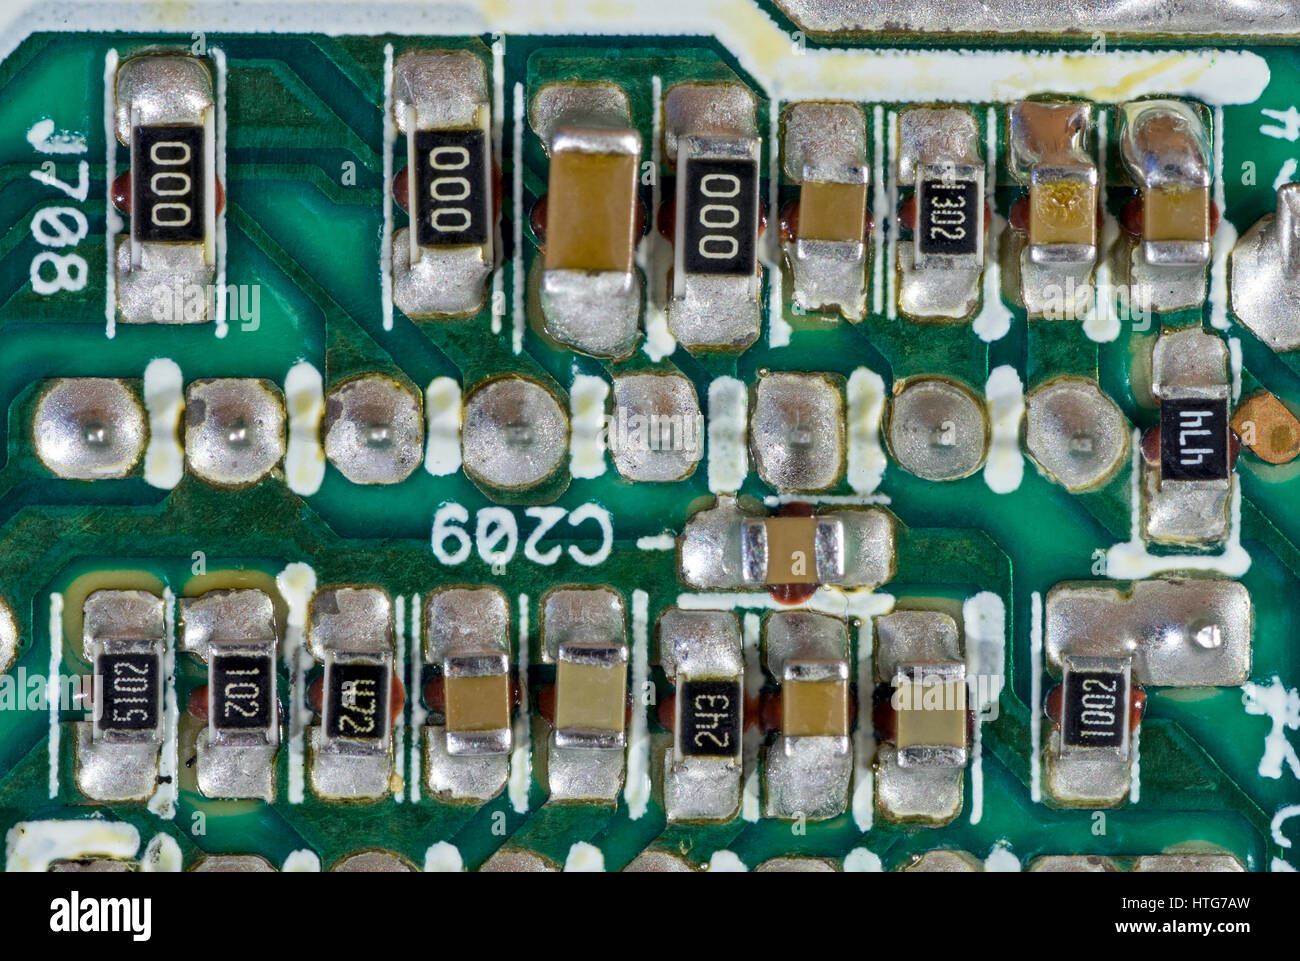 Surface Mount Resistor Stock Photos Circuit Board Resistors Components On Printed Image